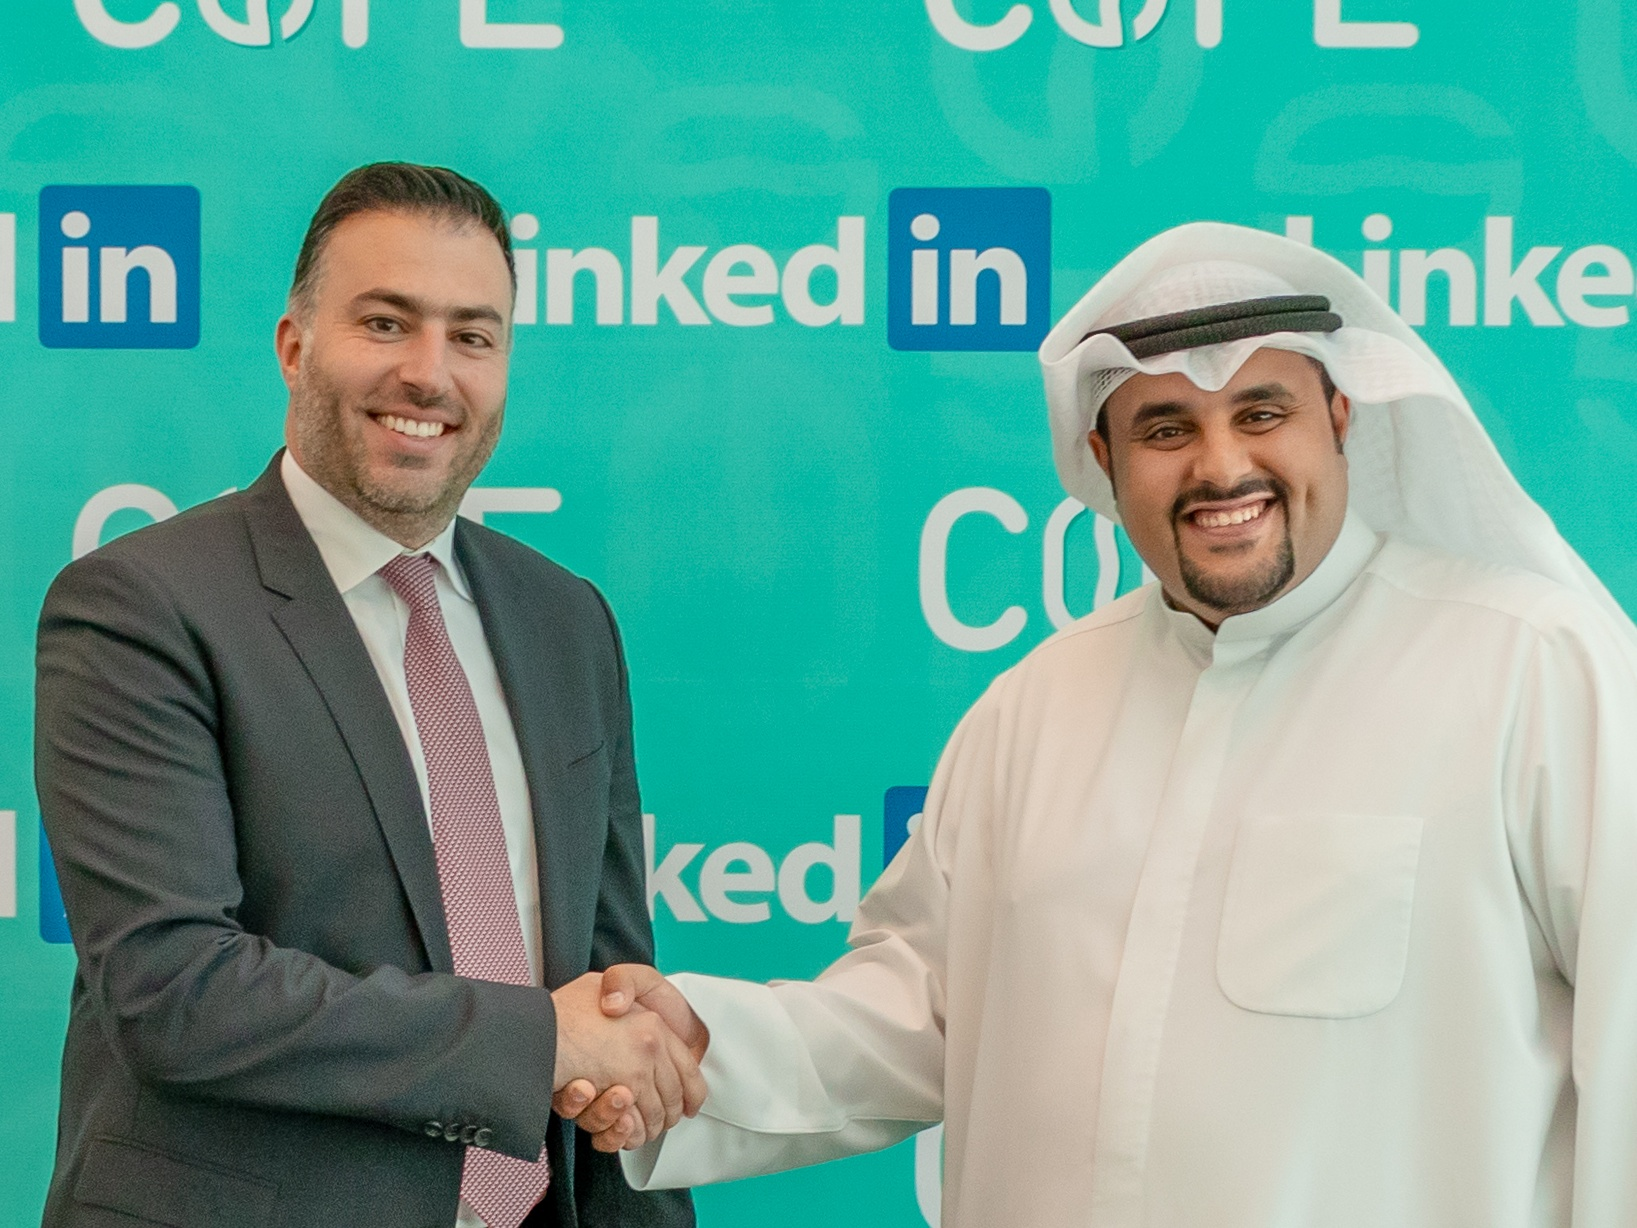 COFE App Partners with LinkedIn to Attract Global Talent